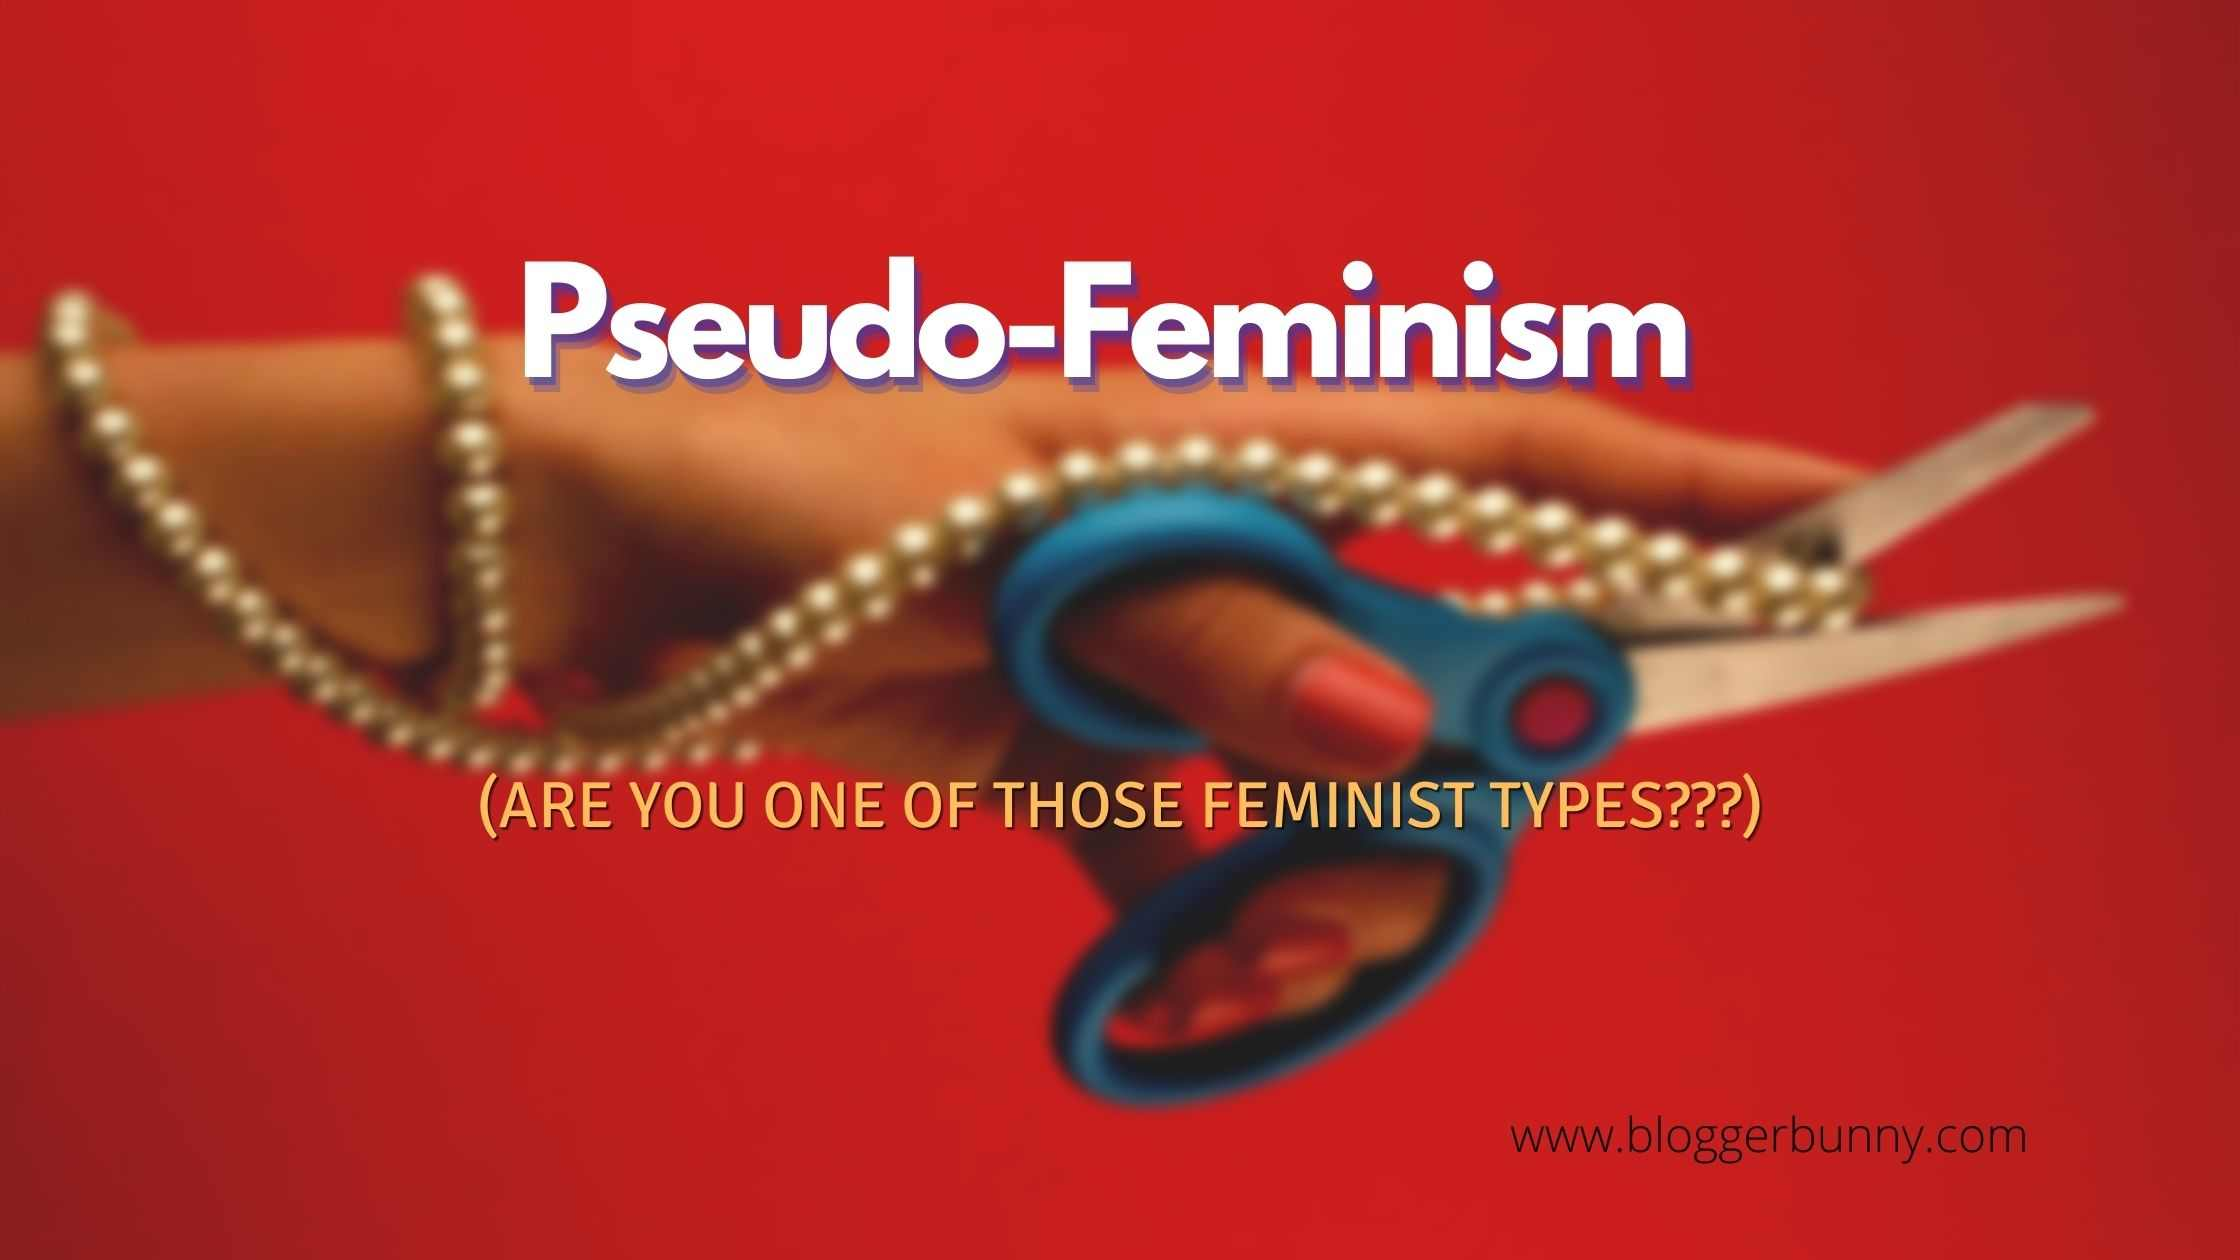 Pseudo-Feminism (Are you one of those feminist types?)